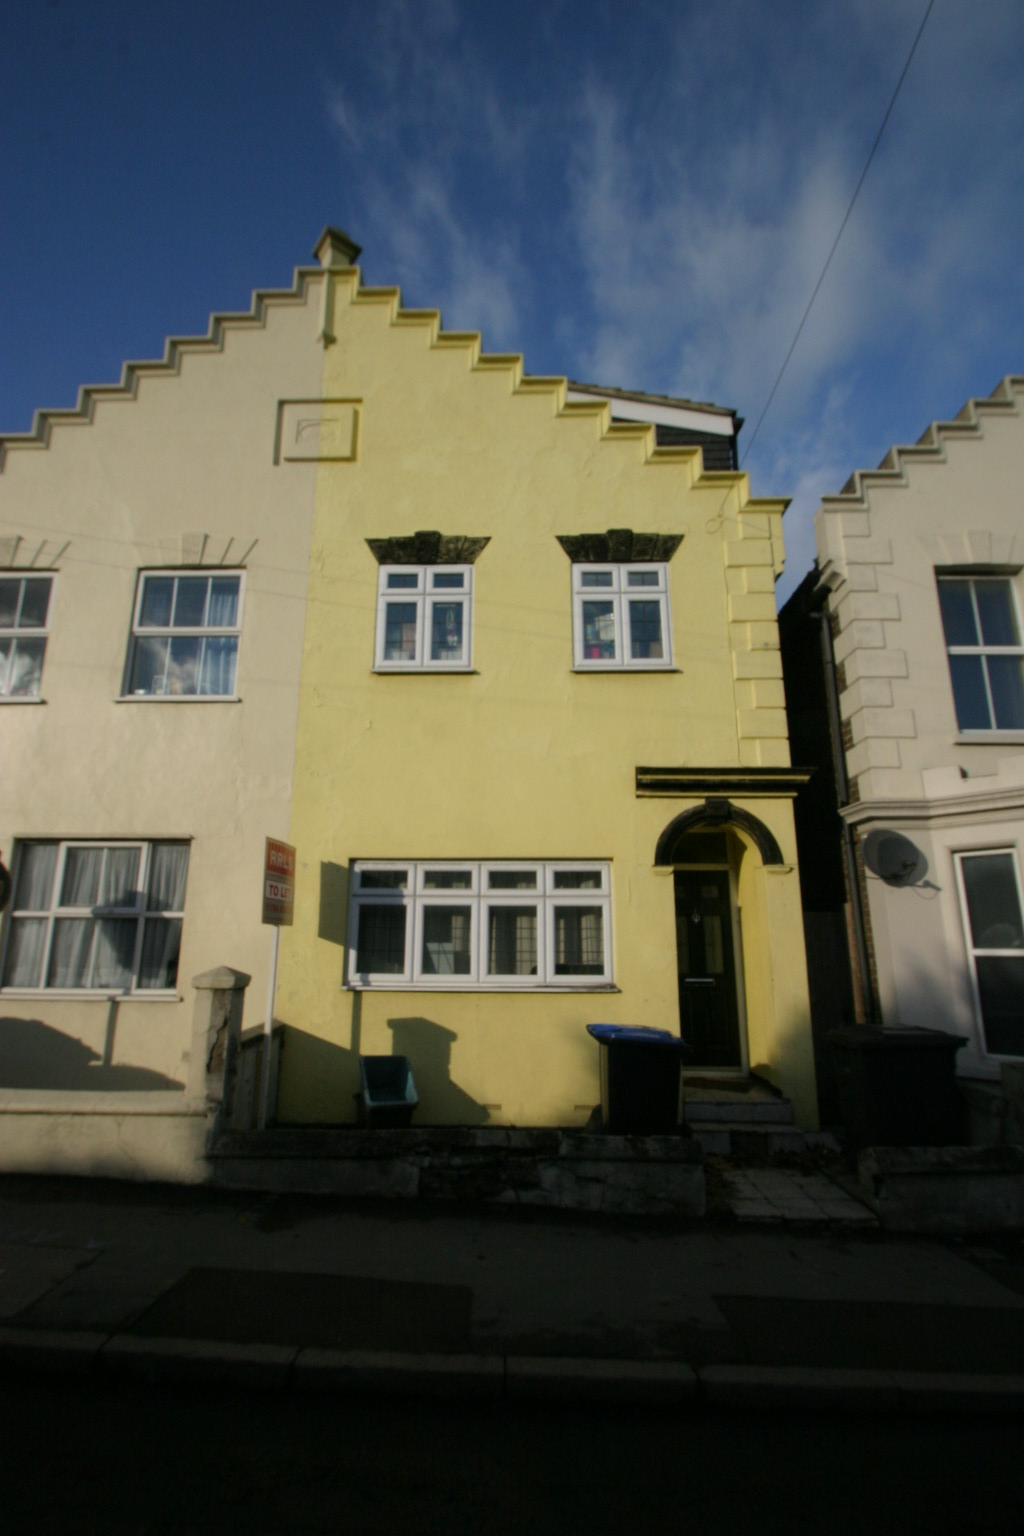 6 Bedroom STUDENT PROPERTY, Egham Hill [STUDENTS ONLY]